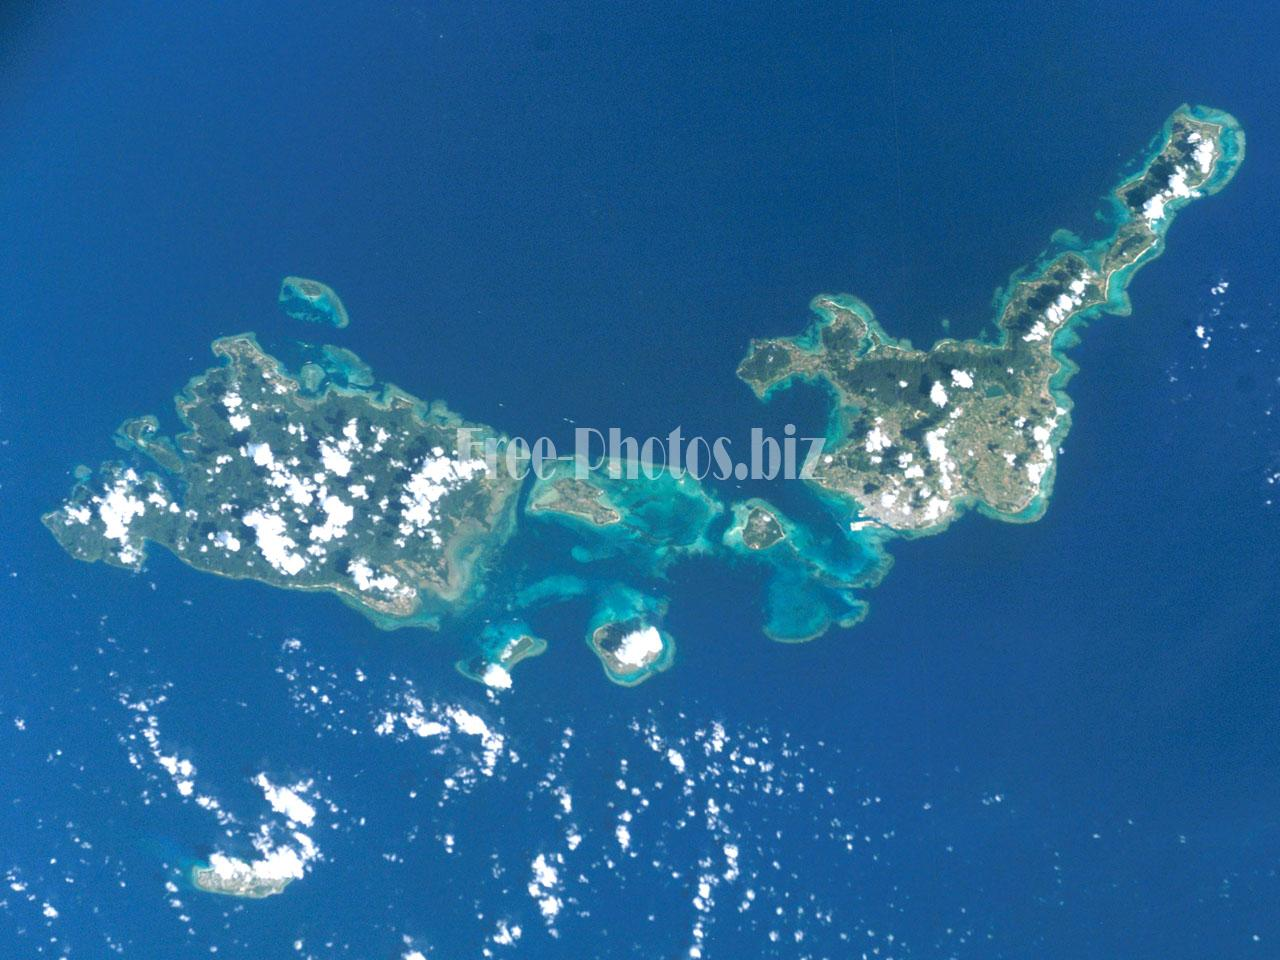 ISS005-E-10686 Yeyama Islands